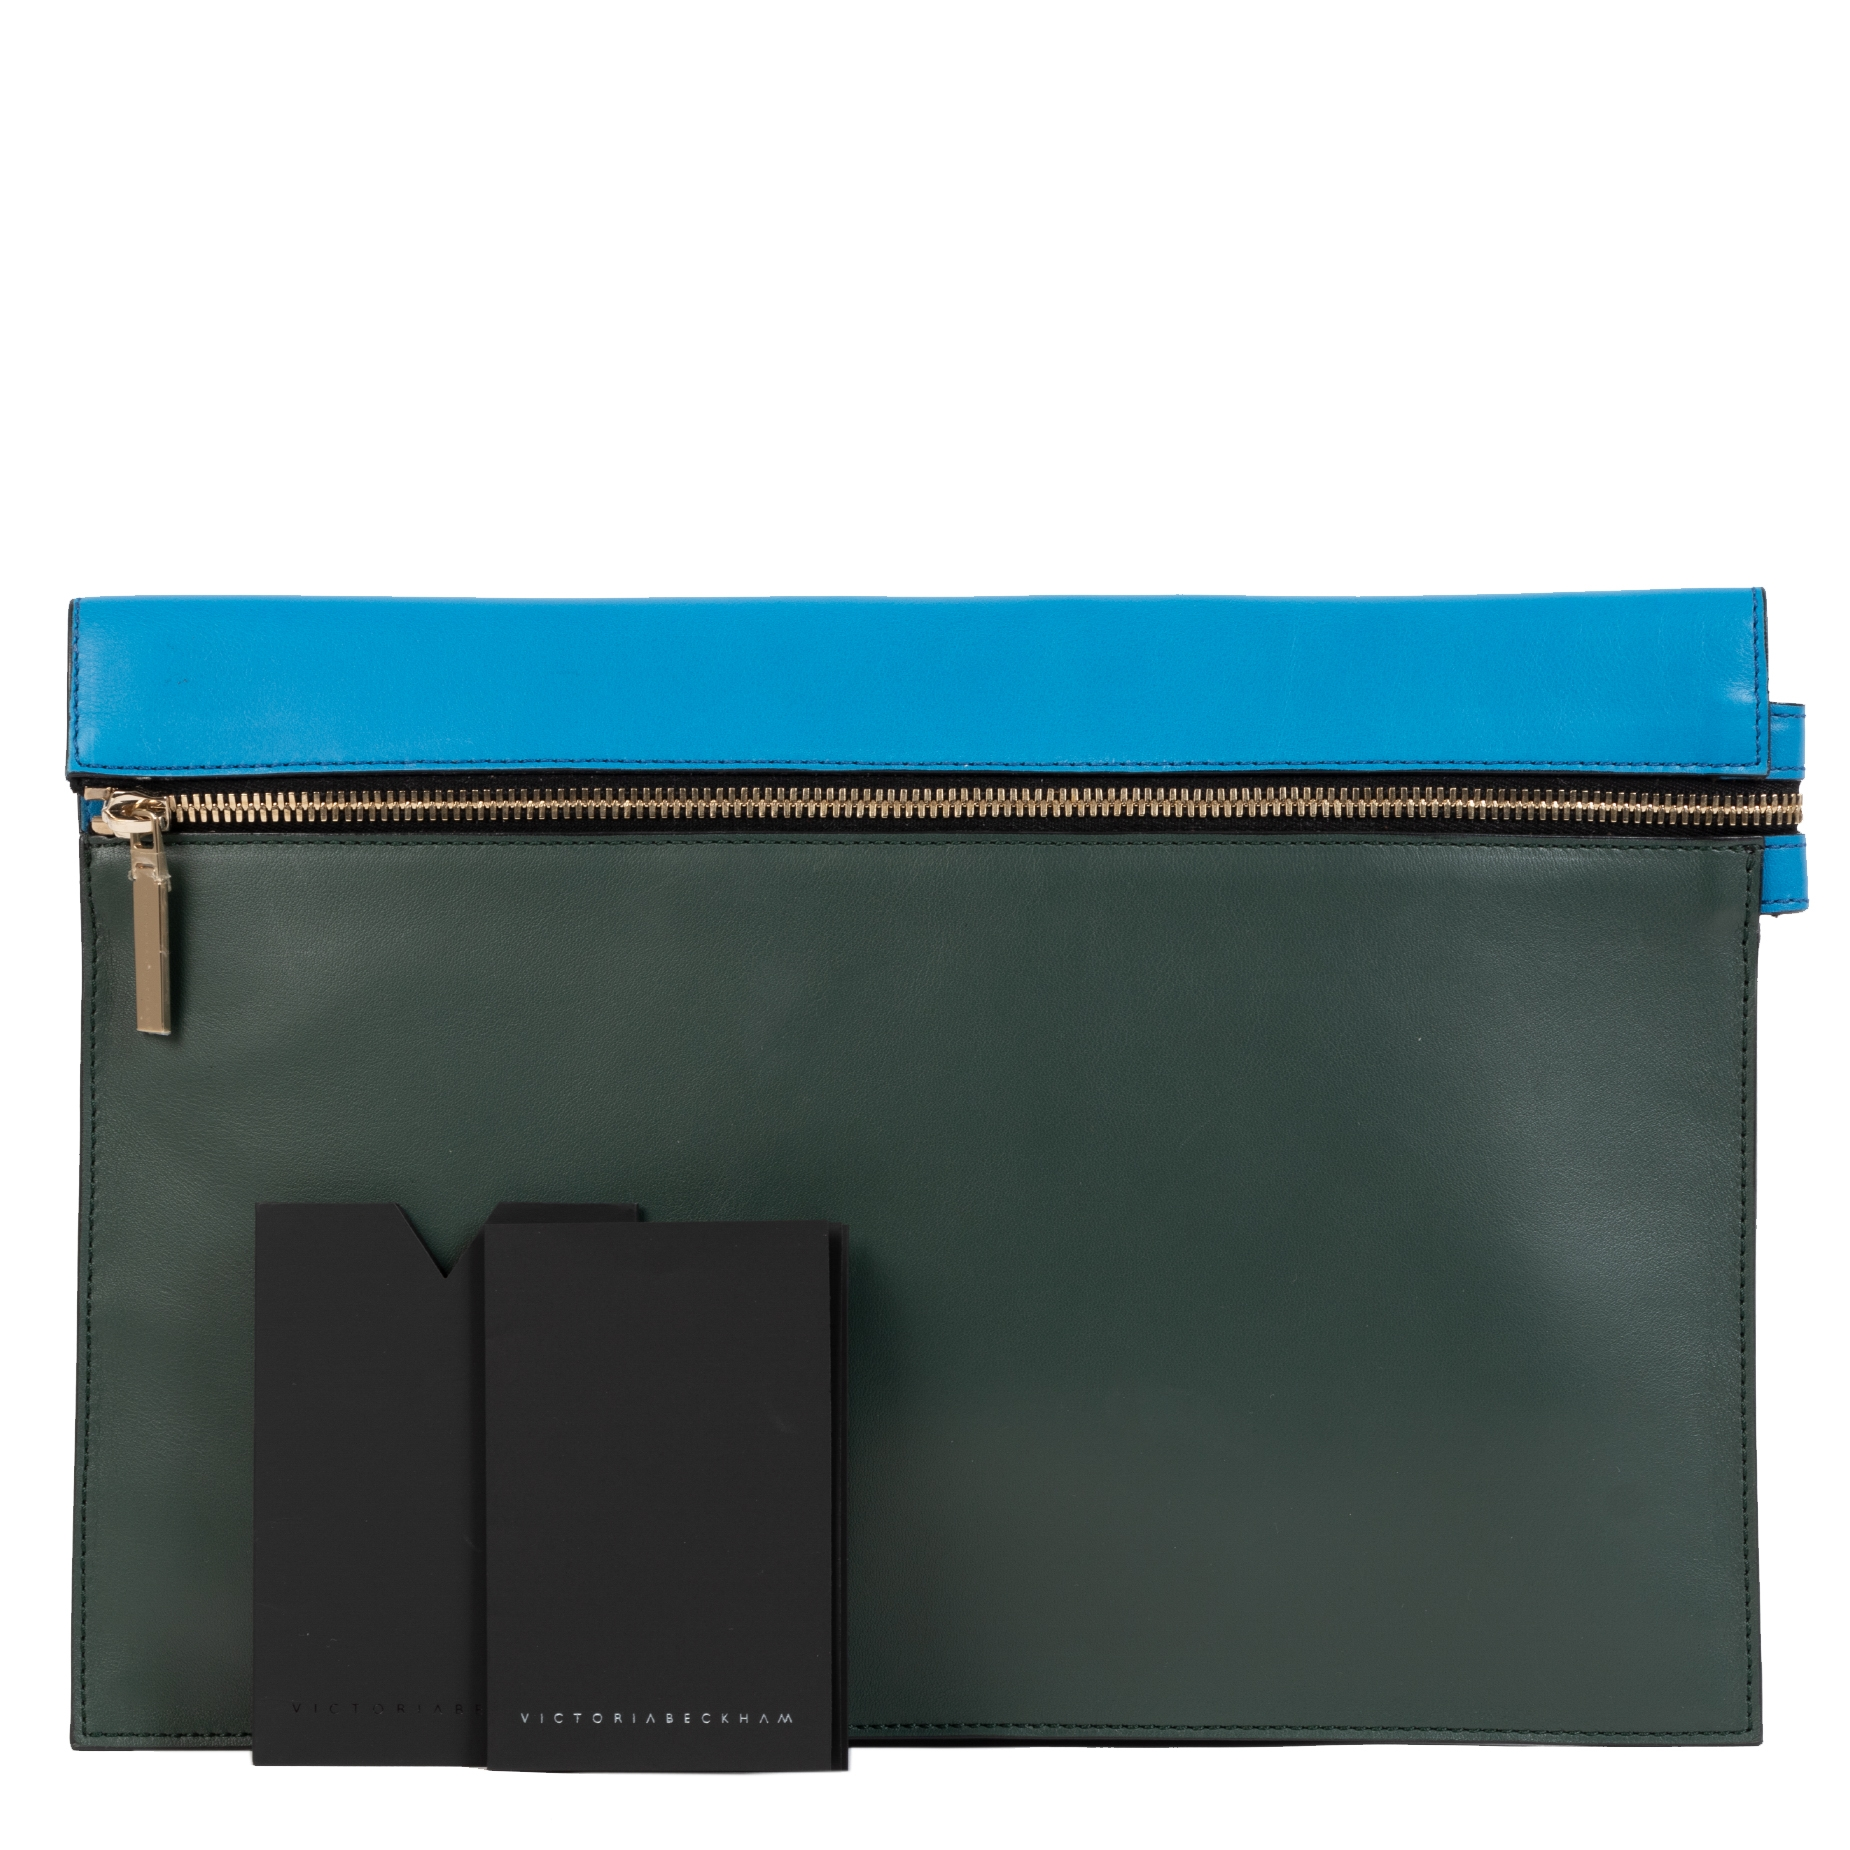 Victoria Beckham Green Blue Leather Clutch